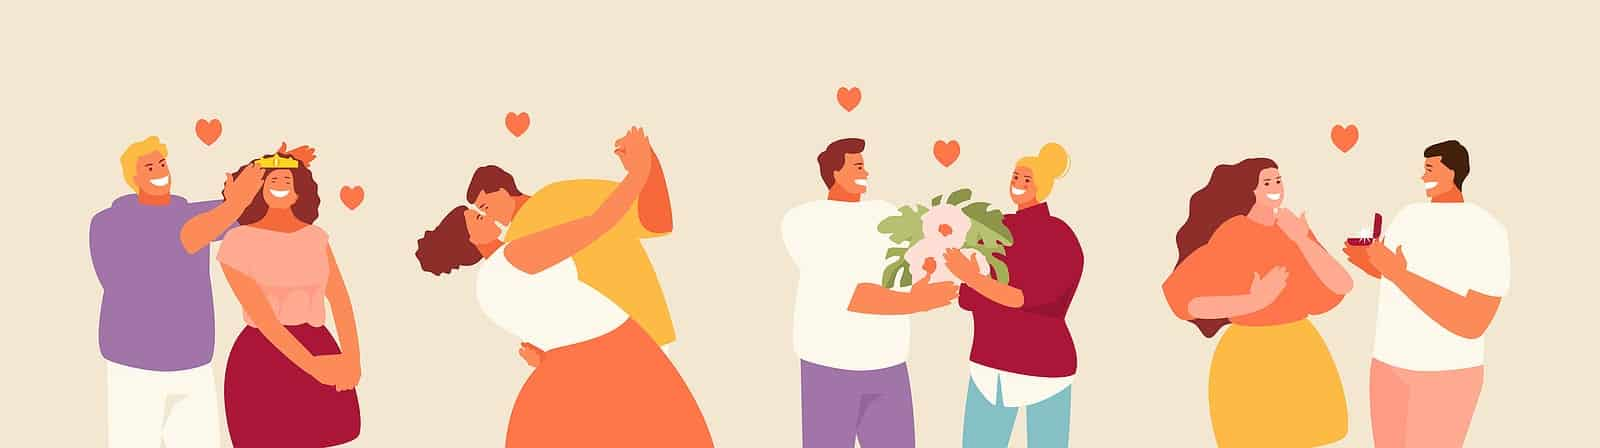 Illustration of 4 different couples in romantic situations